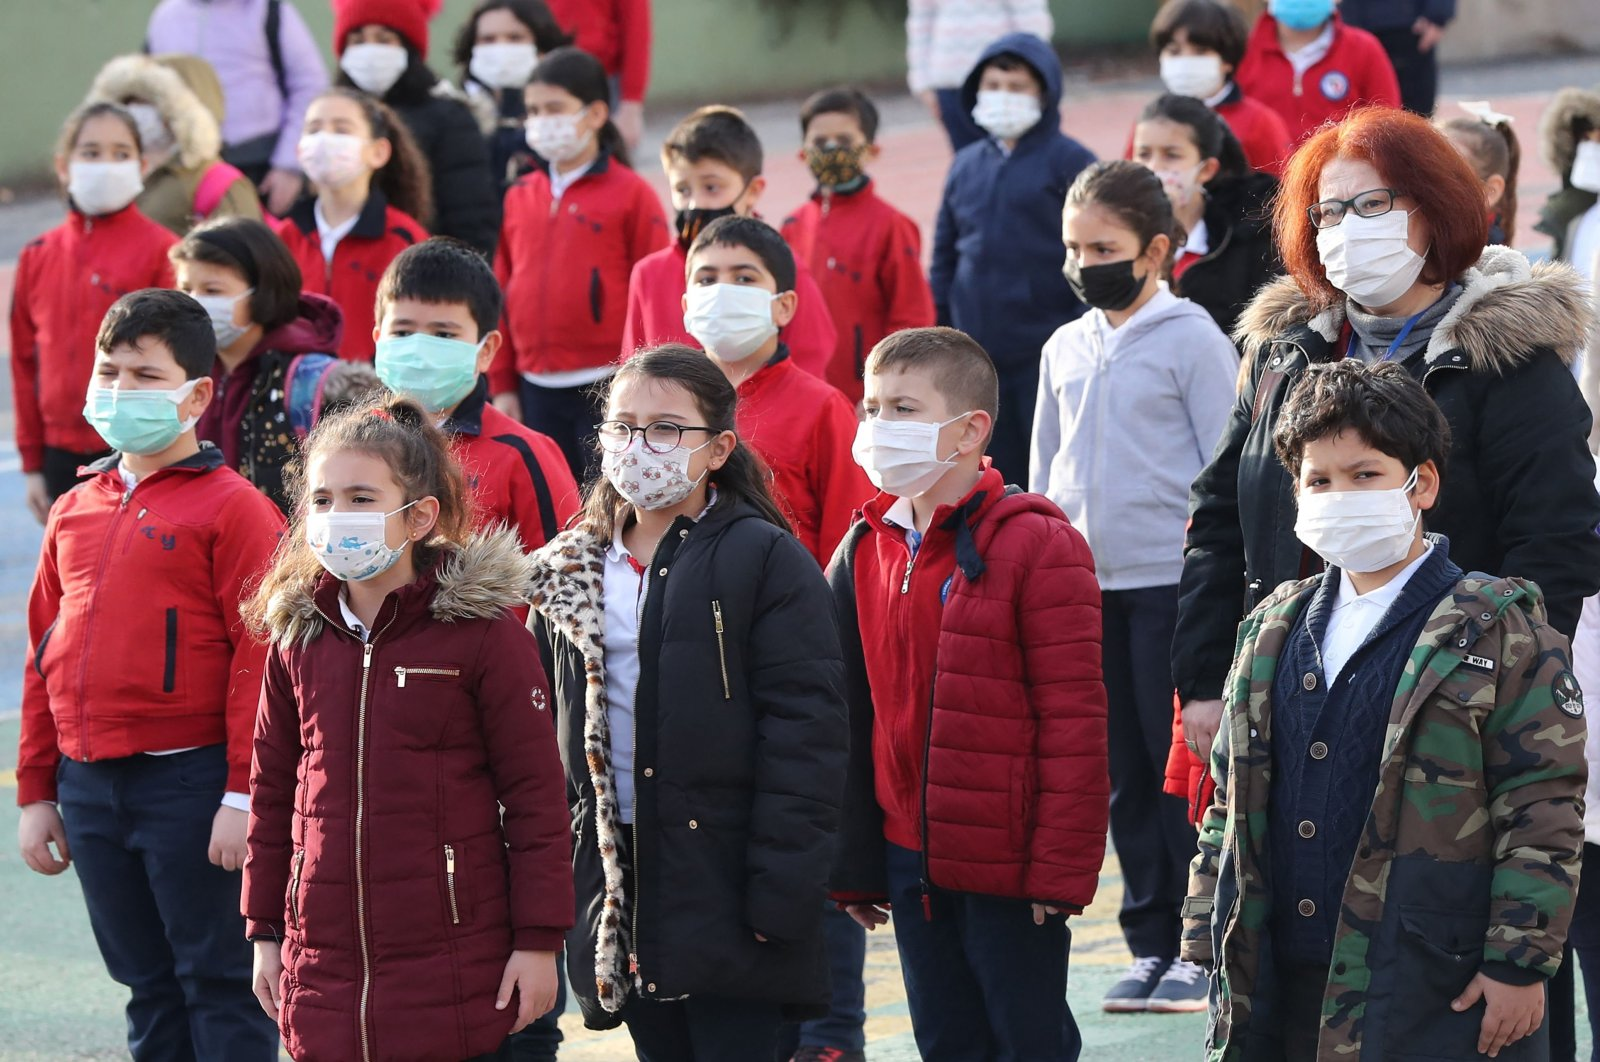 Pupils wearing protective facemasks stand in the courtyard of a school in Ankara on March 2, 2021, after the country lifted restriction measures against the COVID-19 pandemic in regions with lower infection rates. (AFP Photo)